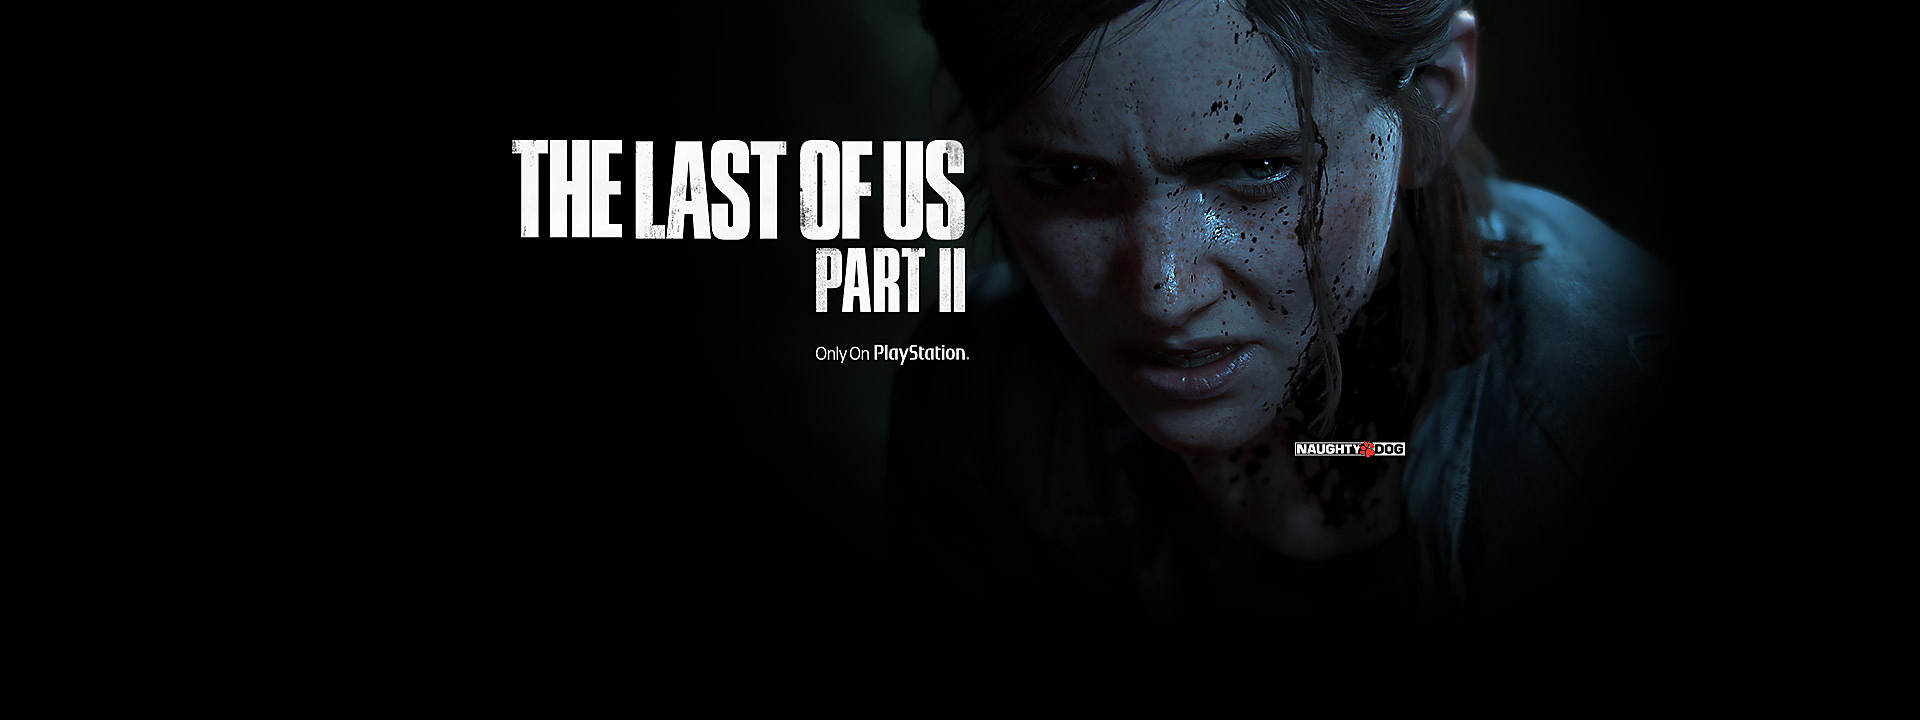 The Last of Us Part II - Gameplay Trailer Now Available